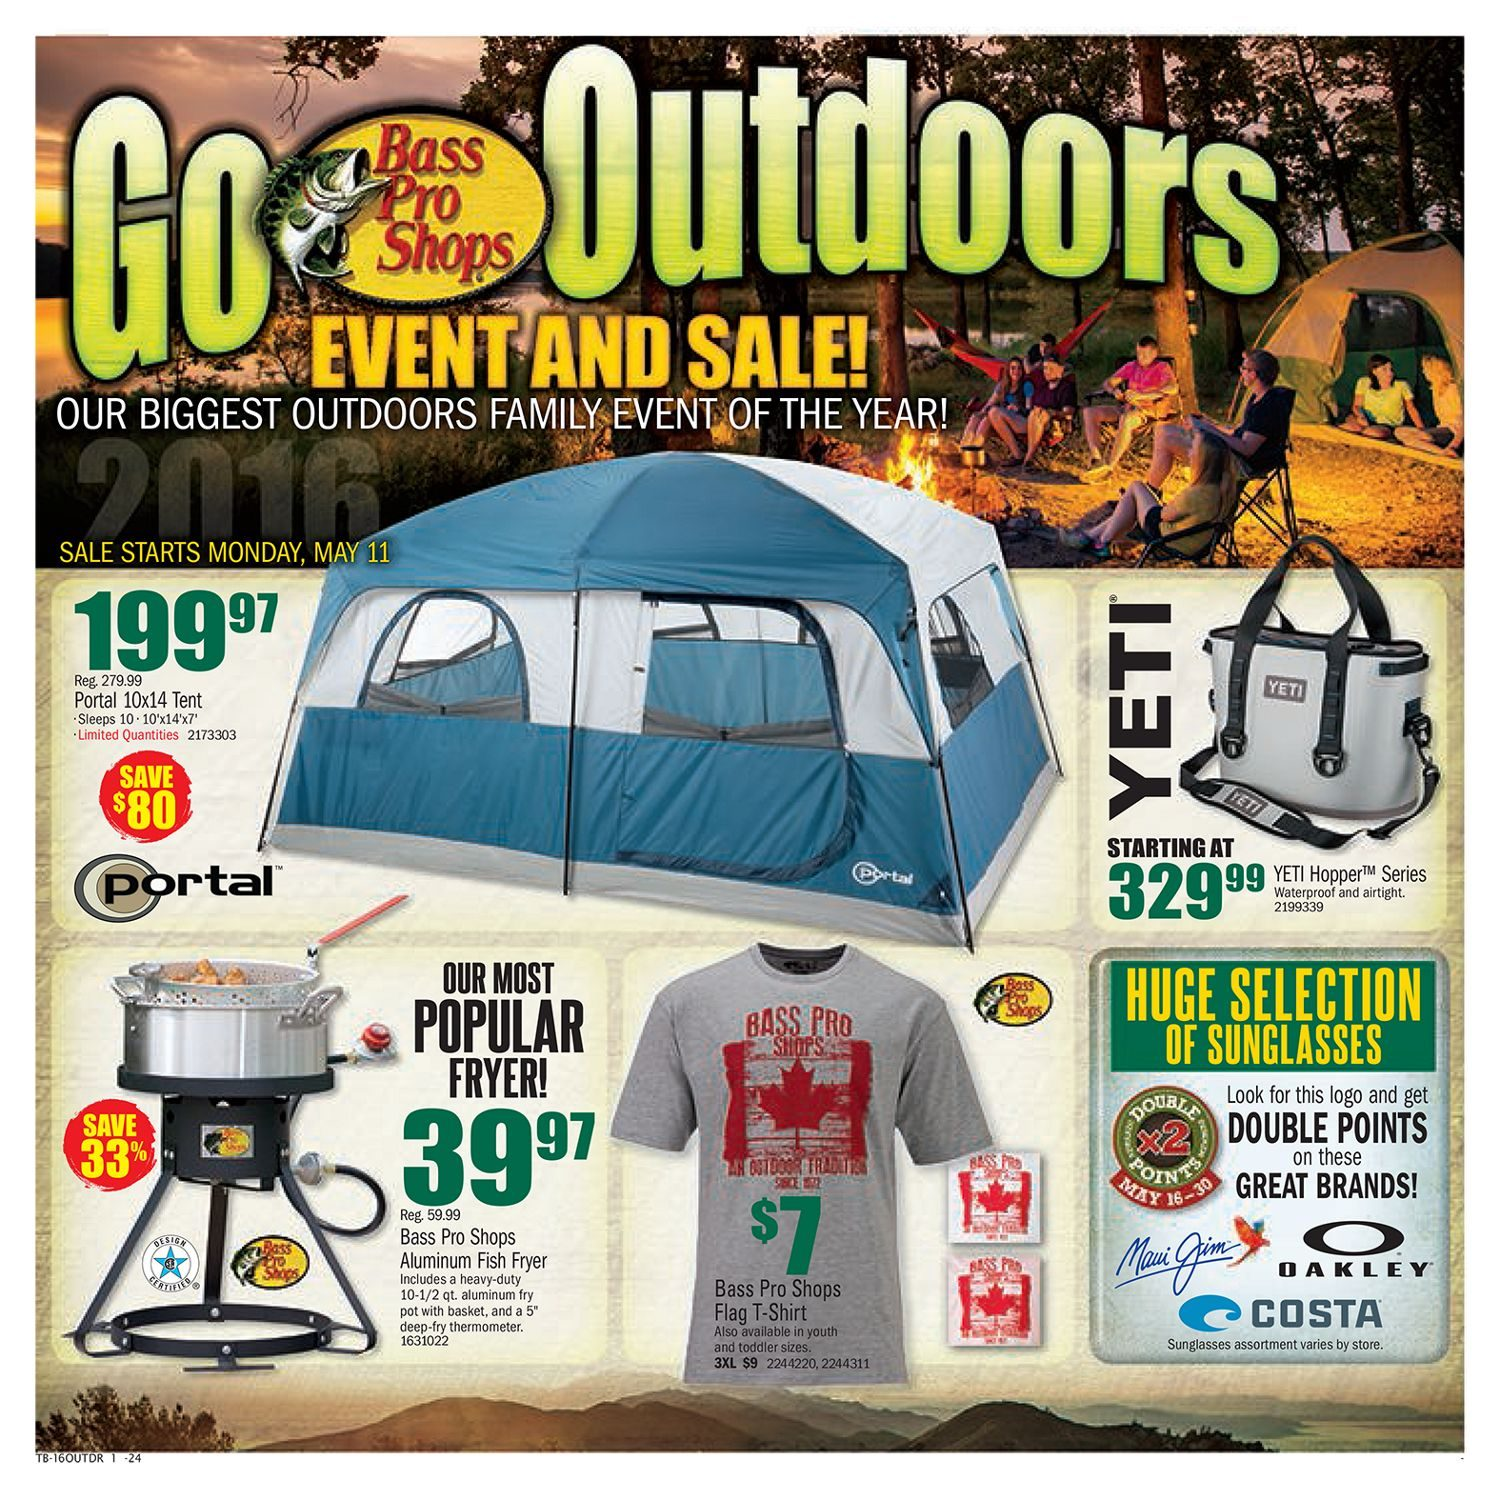 eebae3241 Bass Pro Shops Weekly Flyer - Go Outdoors Event   Sale! - May 11 – 30 -  RedFlagDeals.com